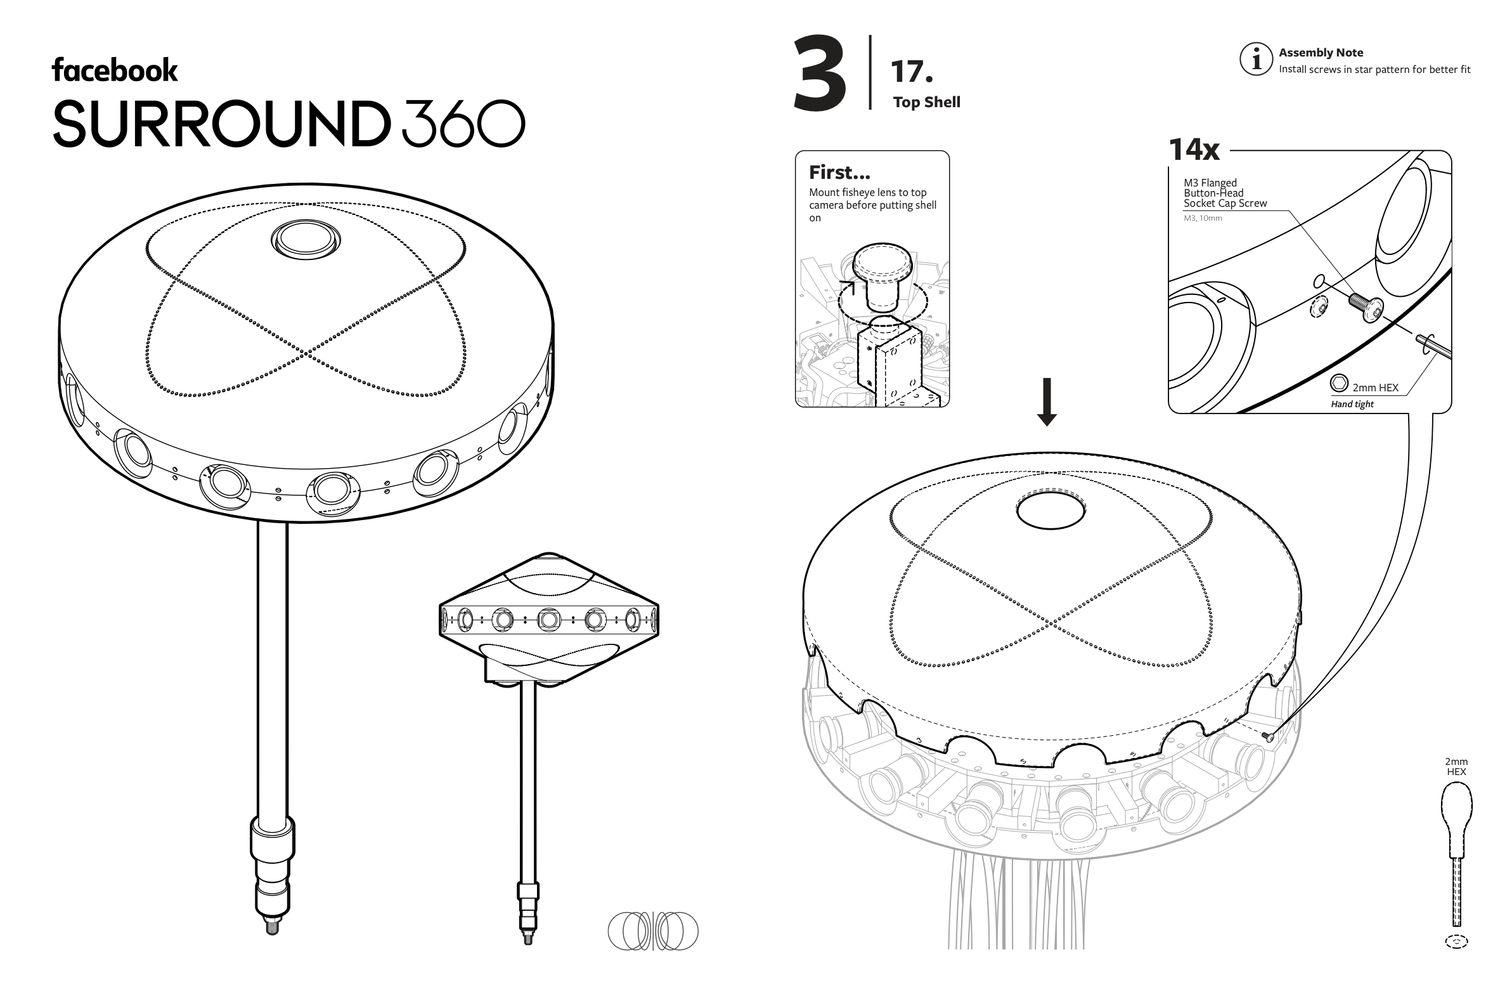 IKEA Fans: How About Building One Of Facebook's Surround 360 Cameras?